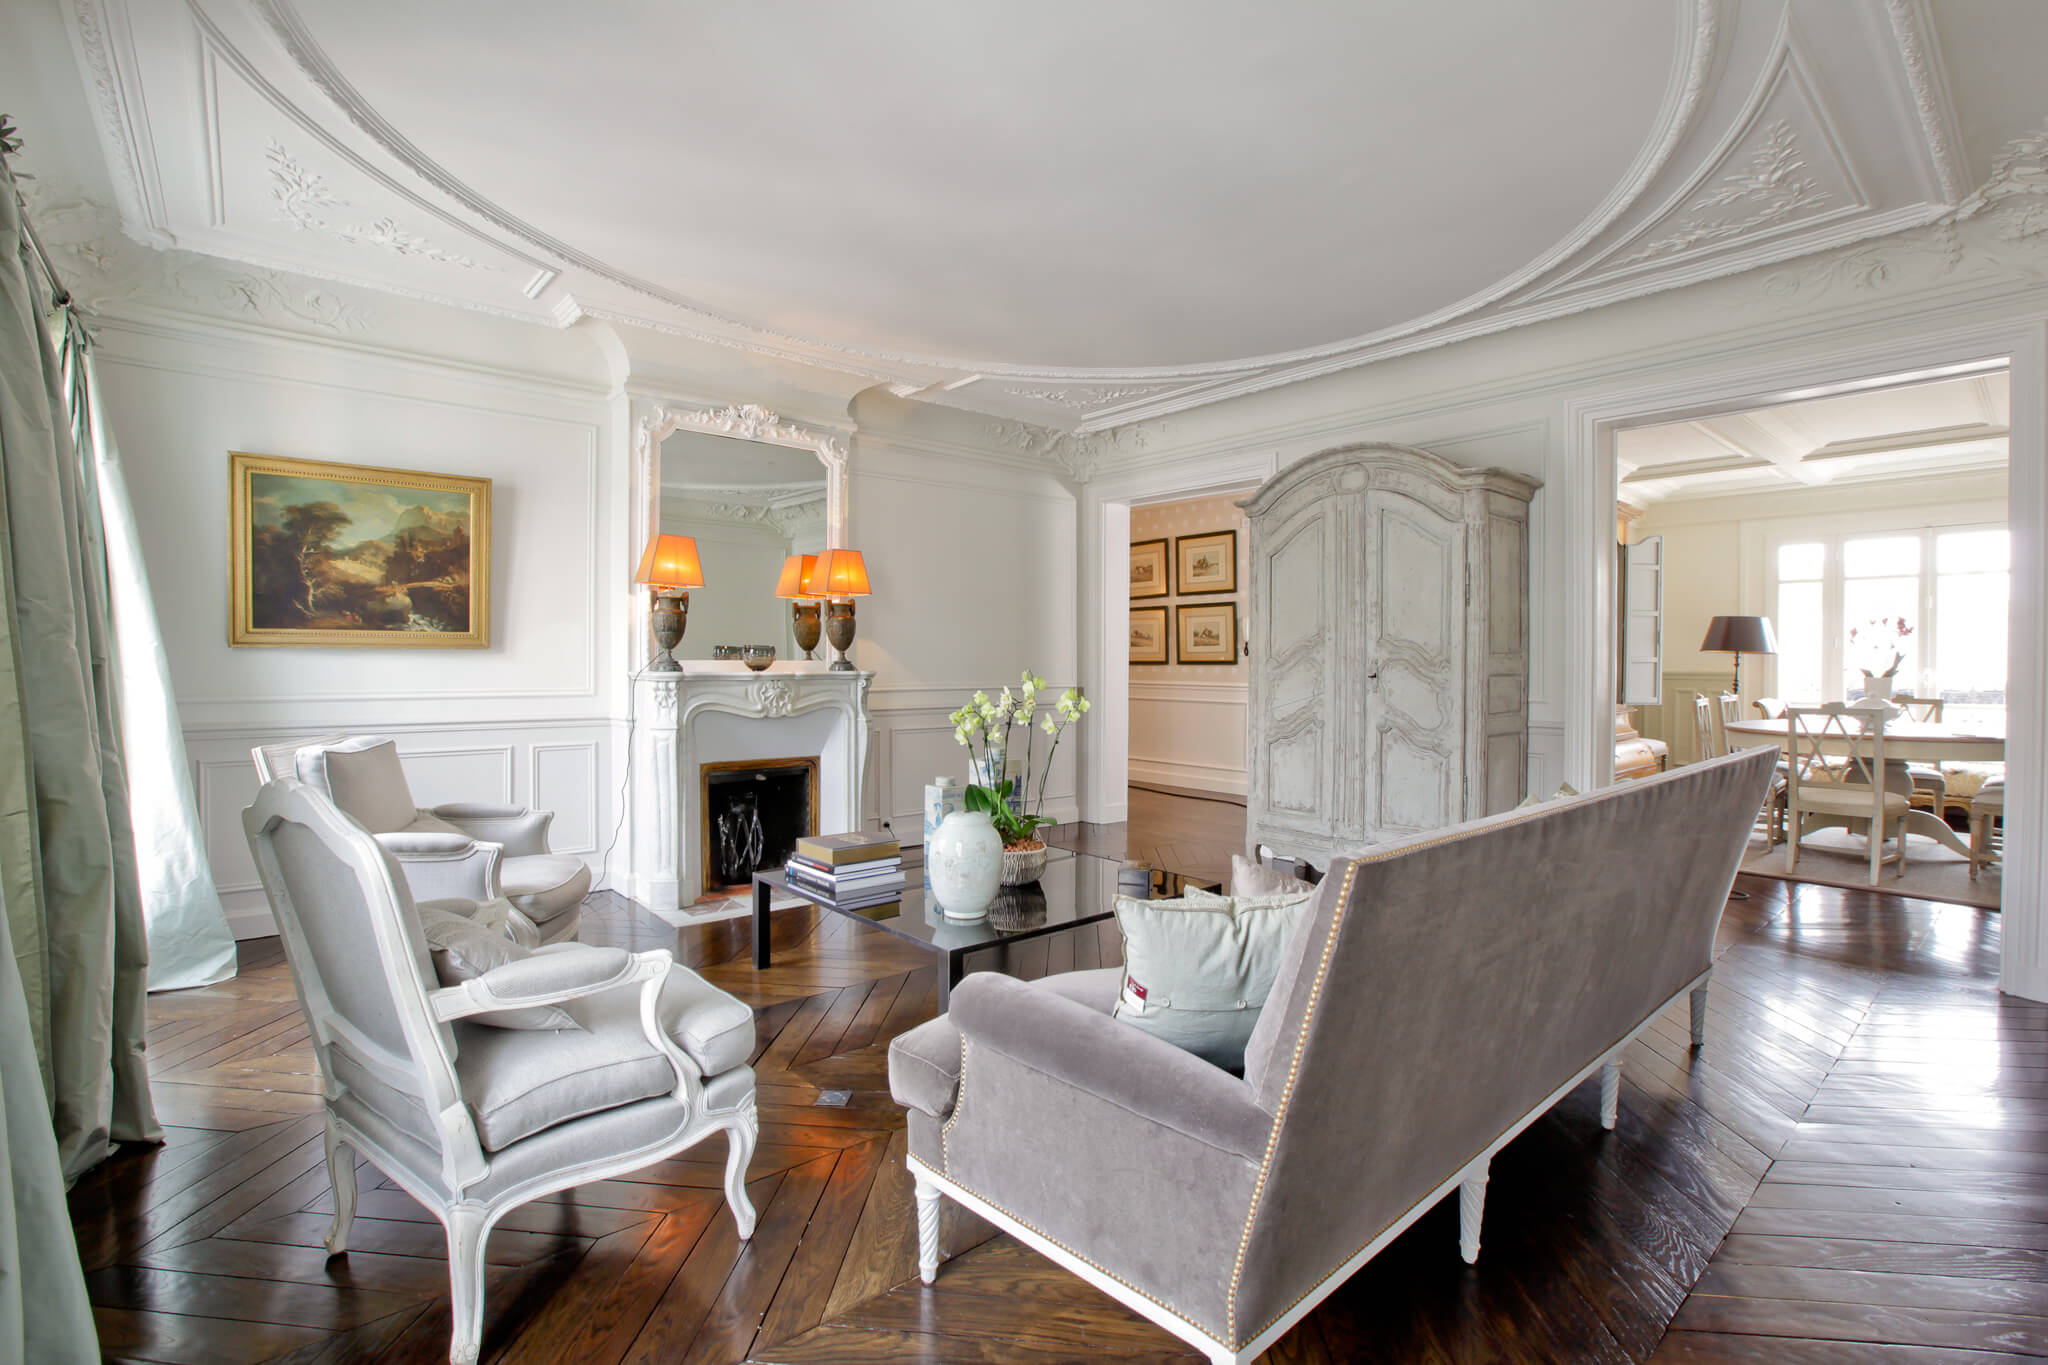 Apartments For Sale In St Germain Paris